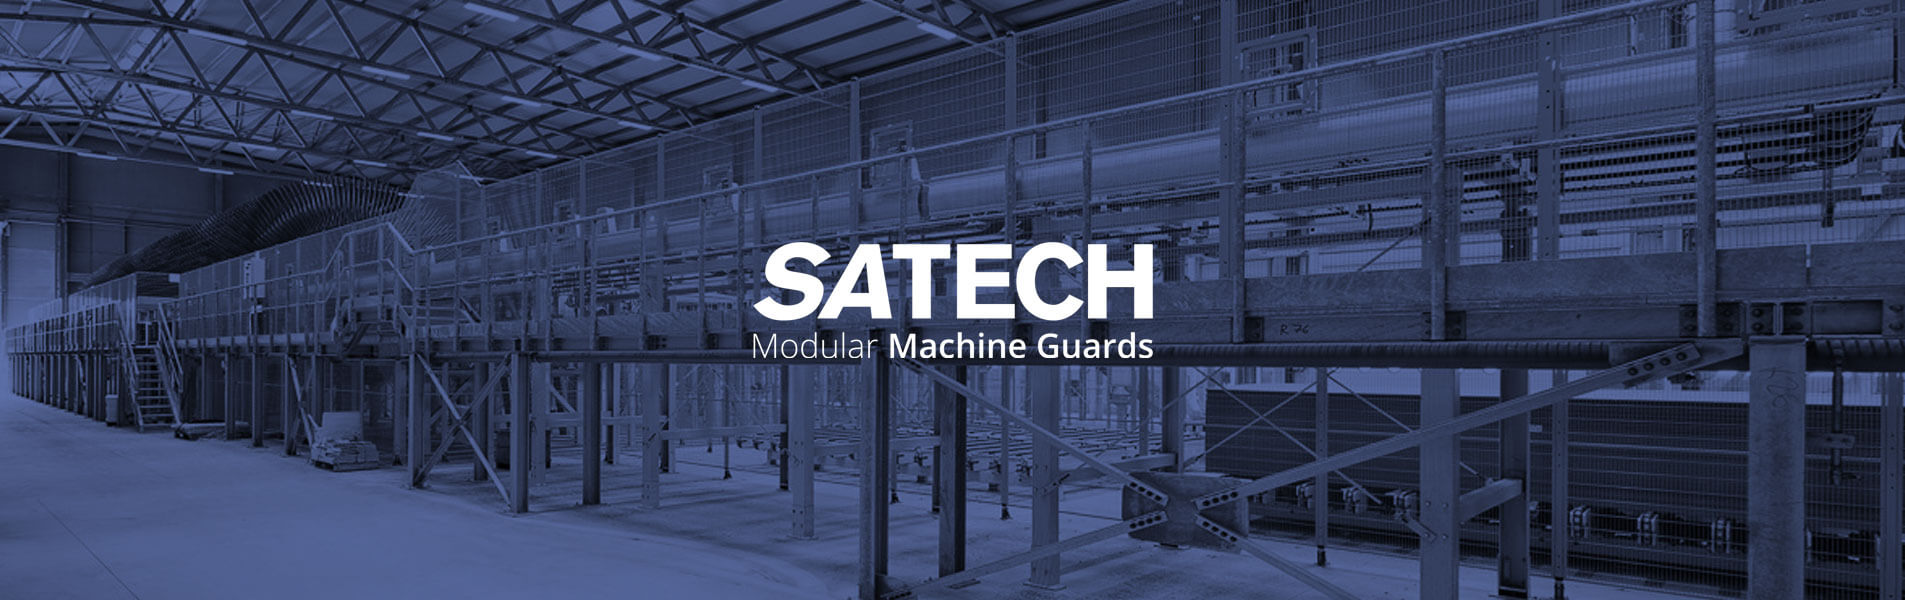 Innovation and new products at Satech!